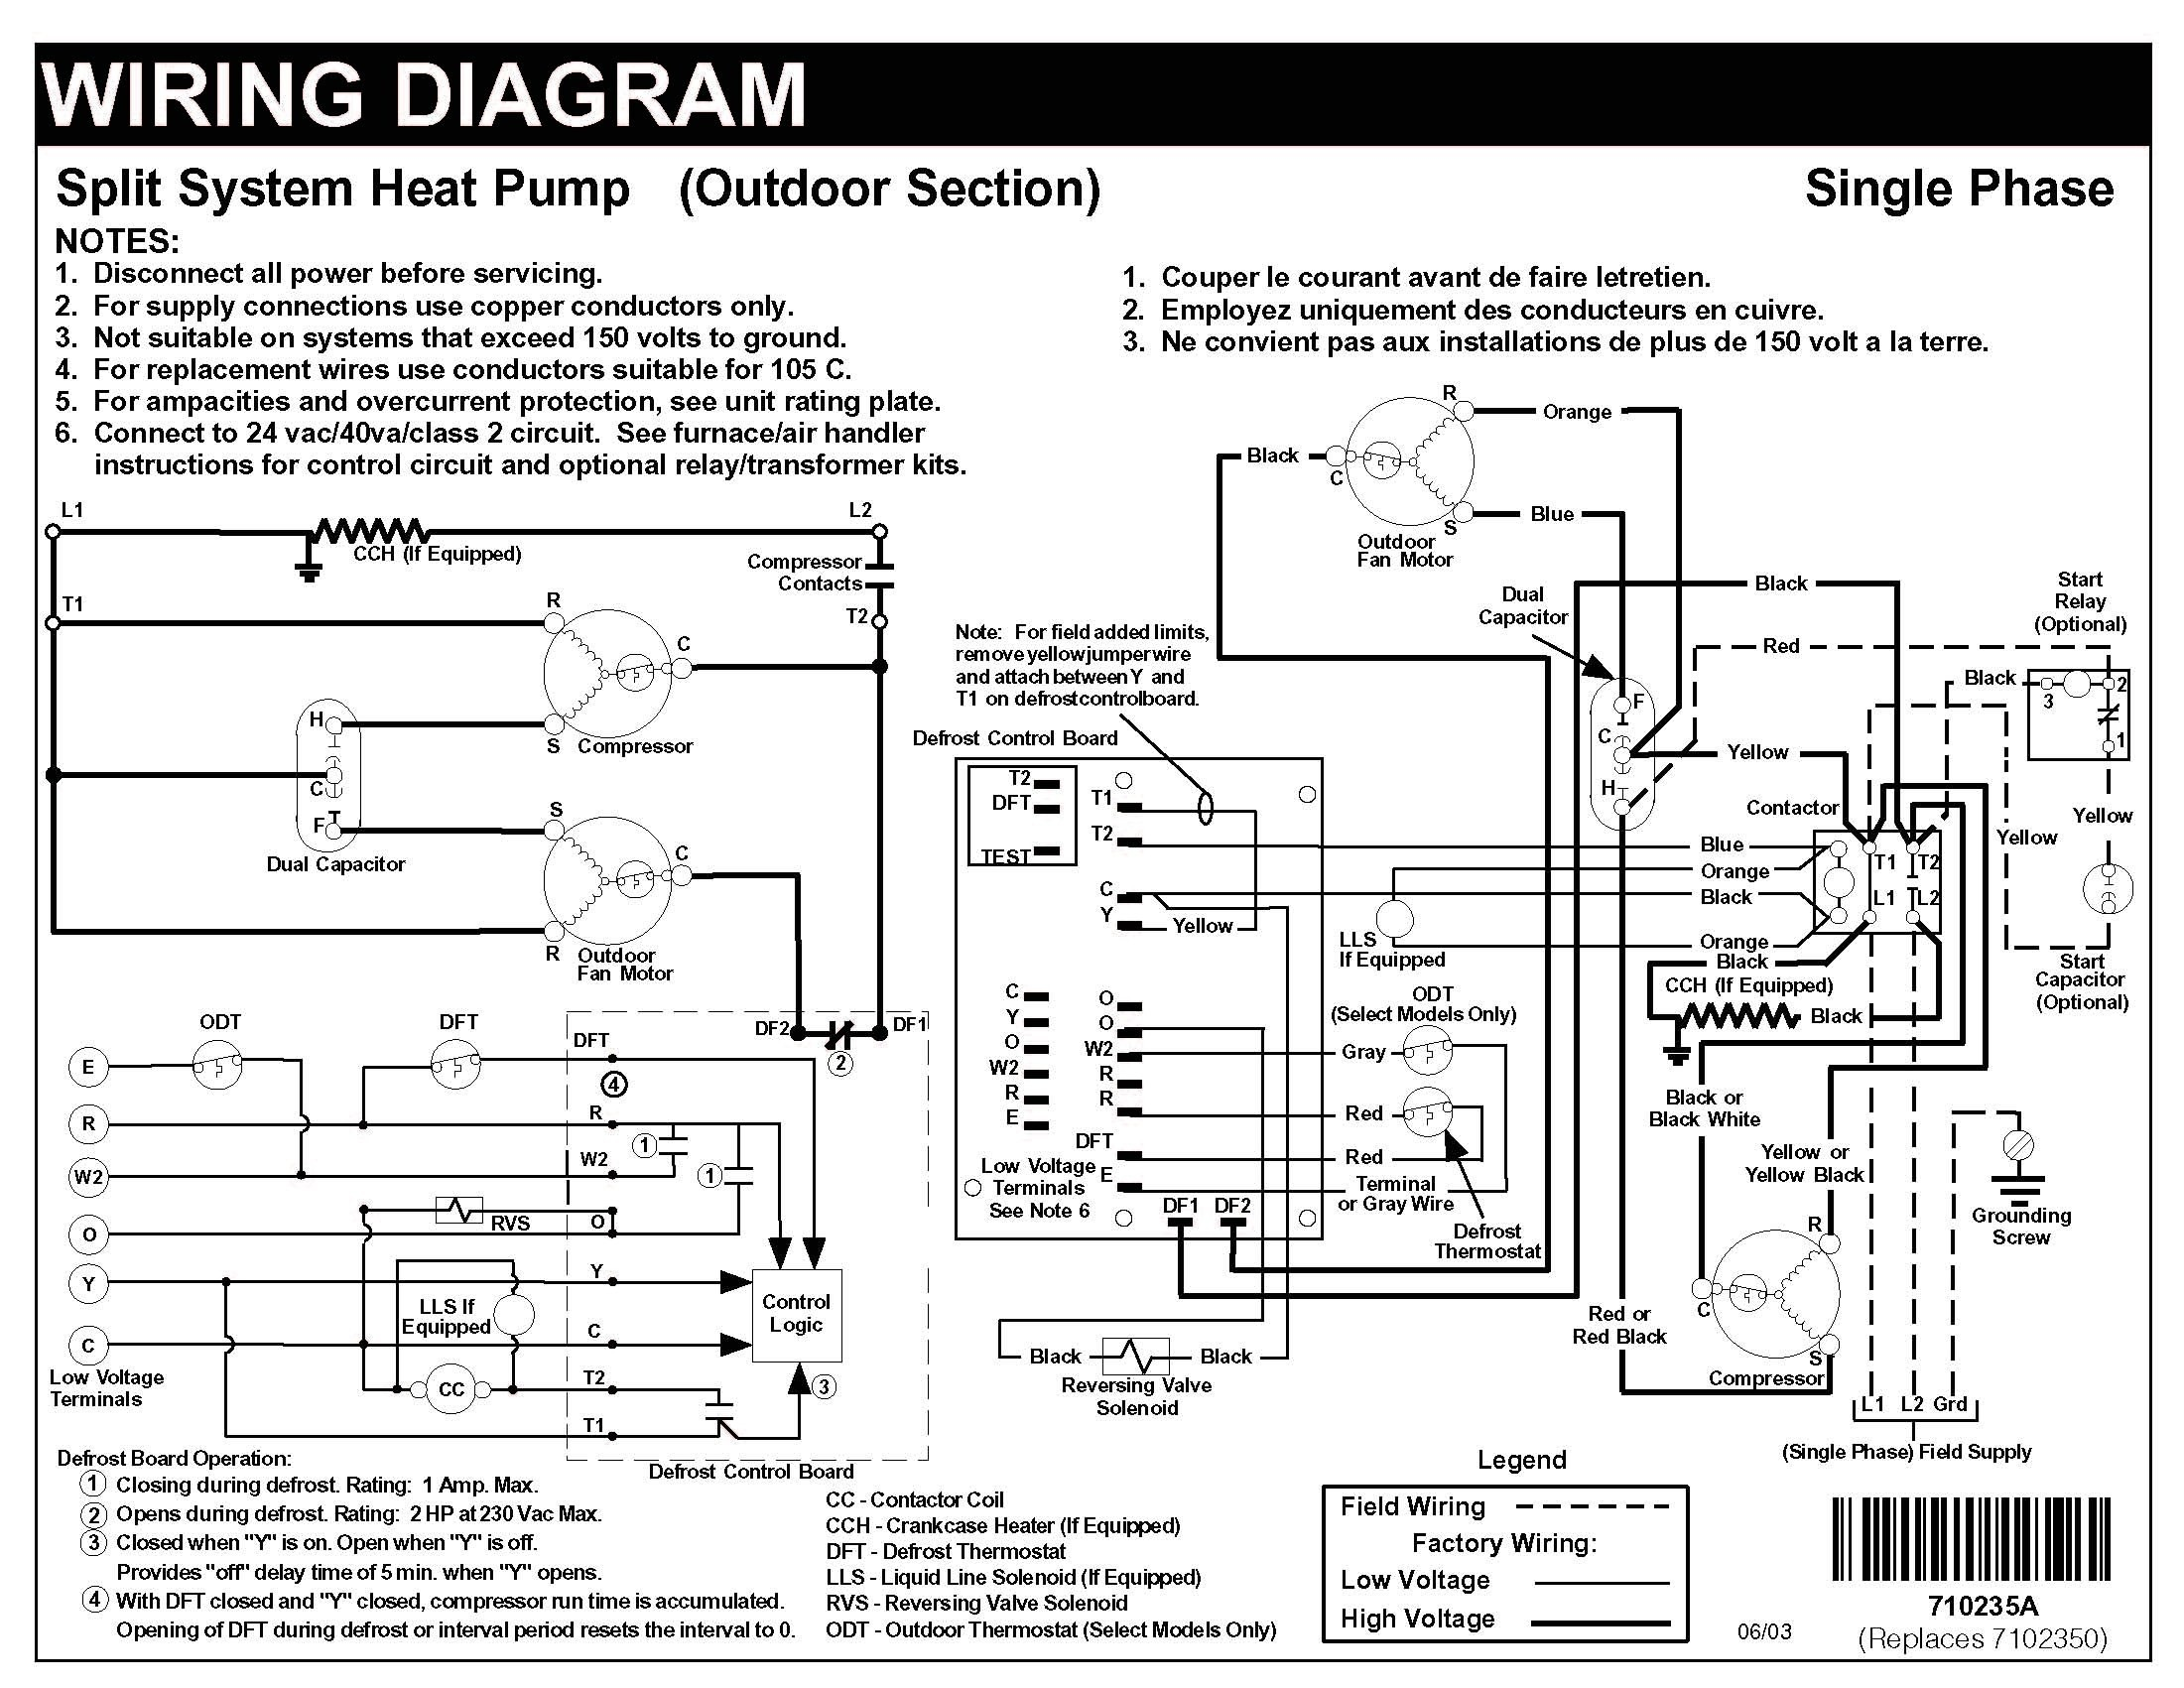 Old Fashioned Ktm 690 Wiring Diagram 2011 Gift Electrical Diagram